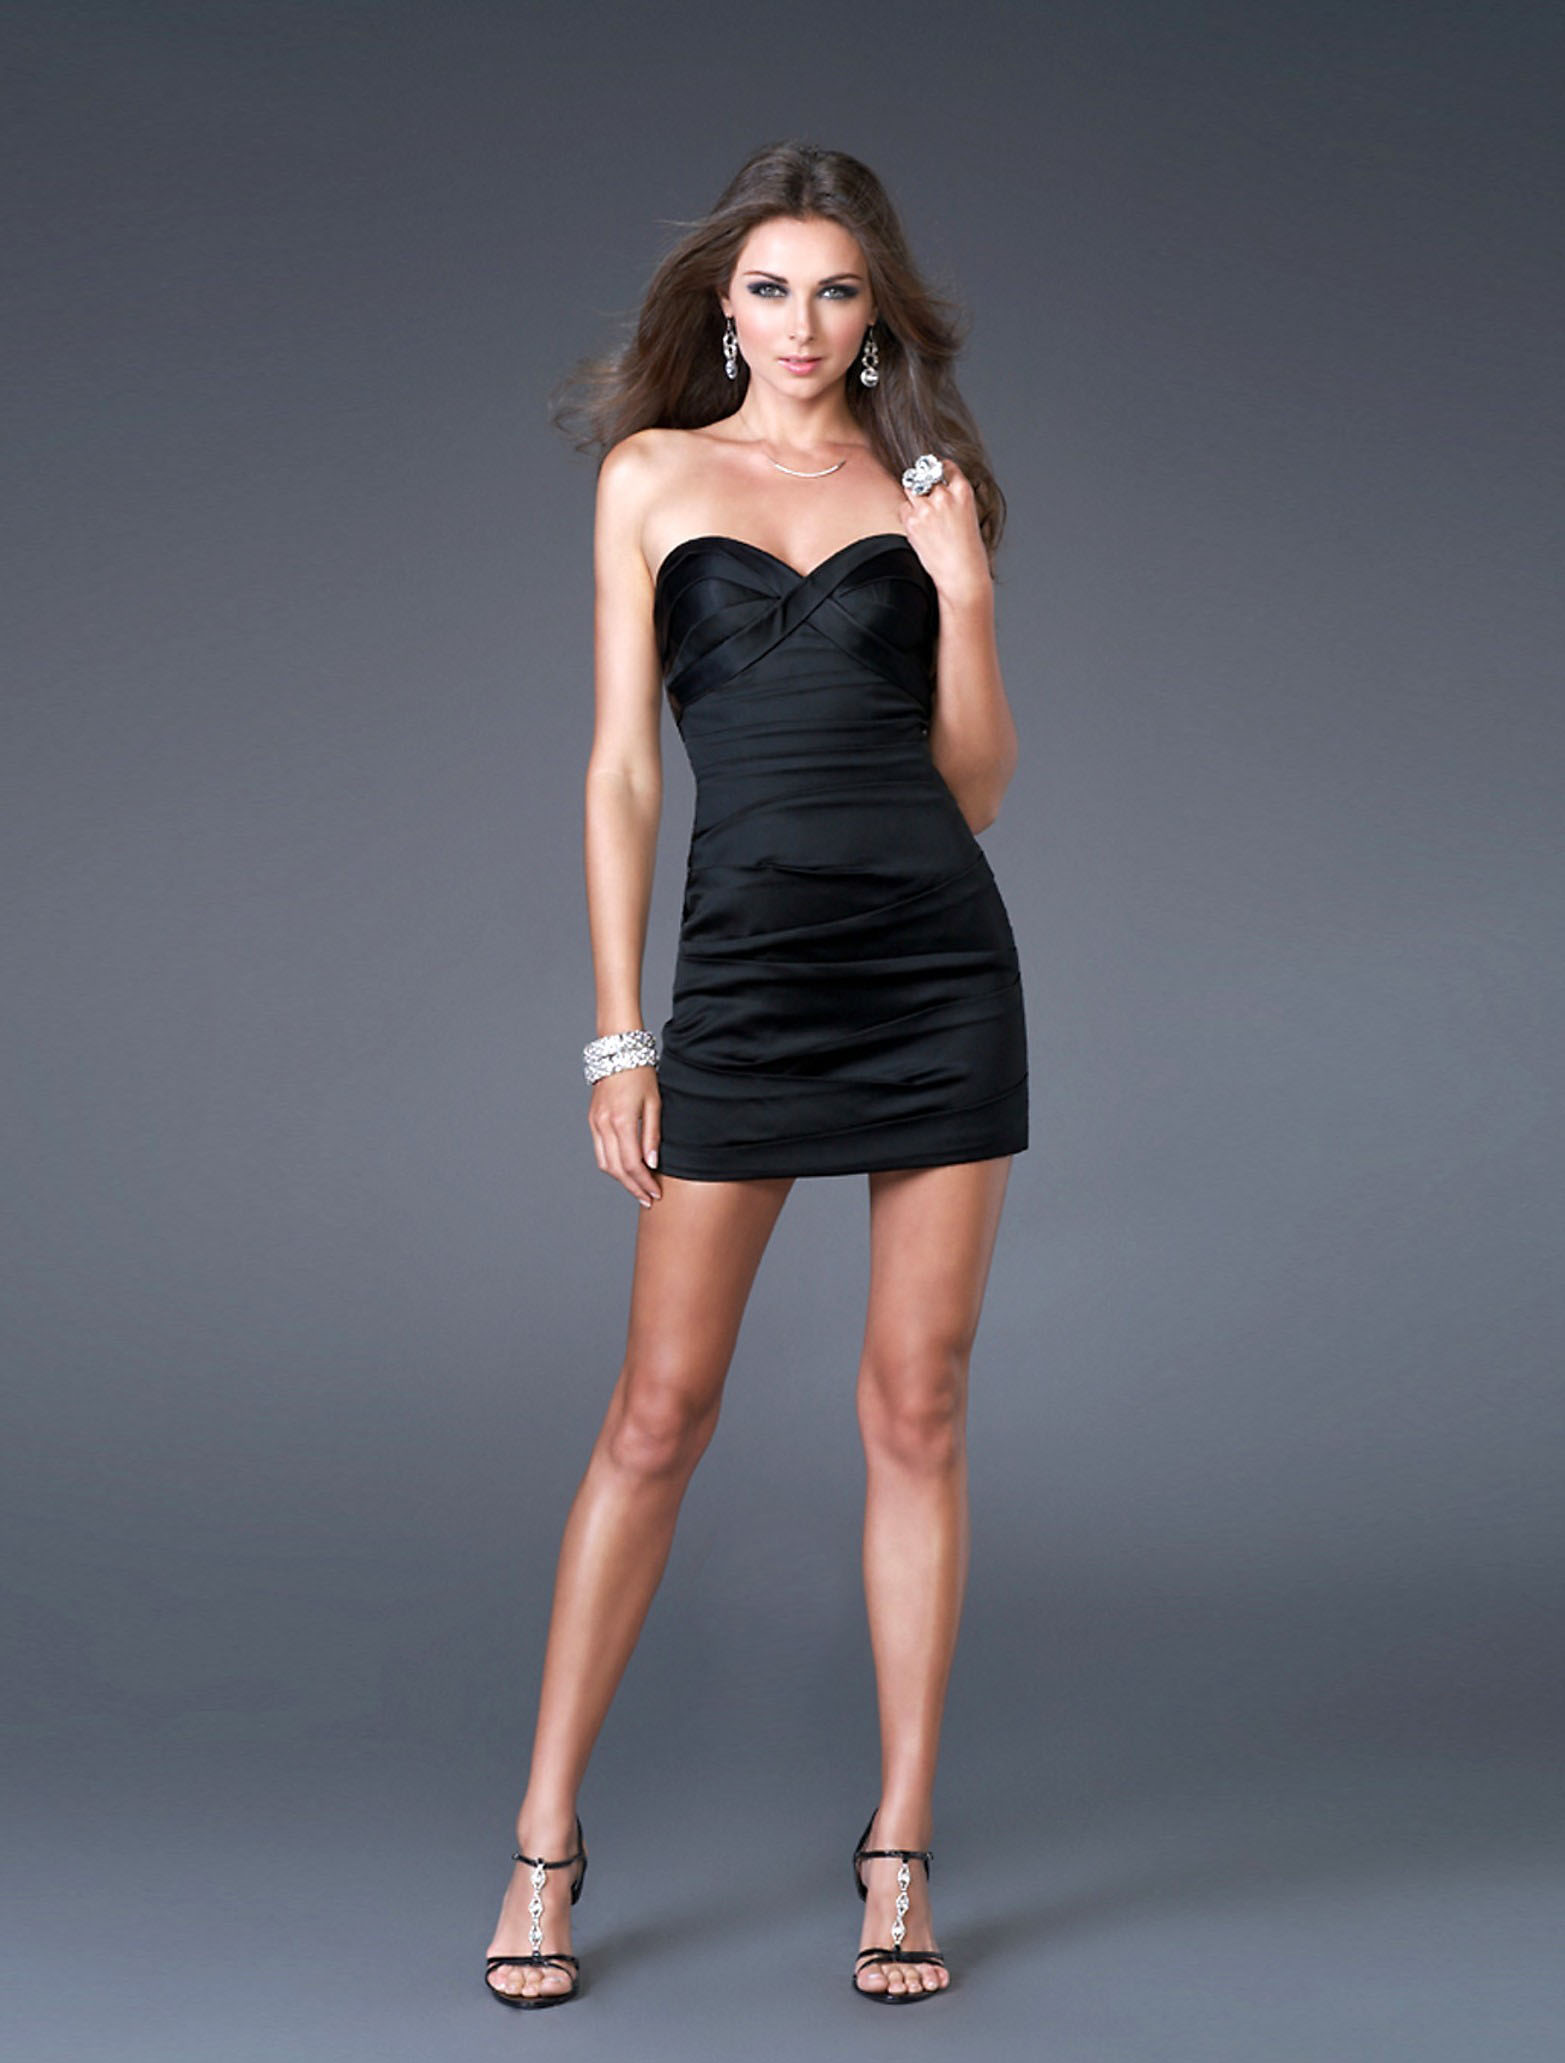 Wedding Black Short Dresses collection black short dresses pictures fashion trends and models of gowns dress ideas